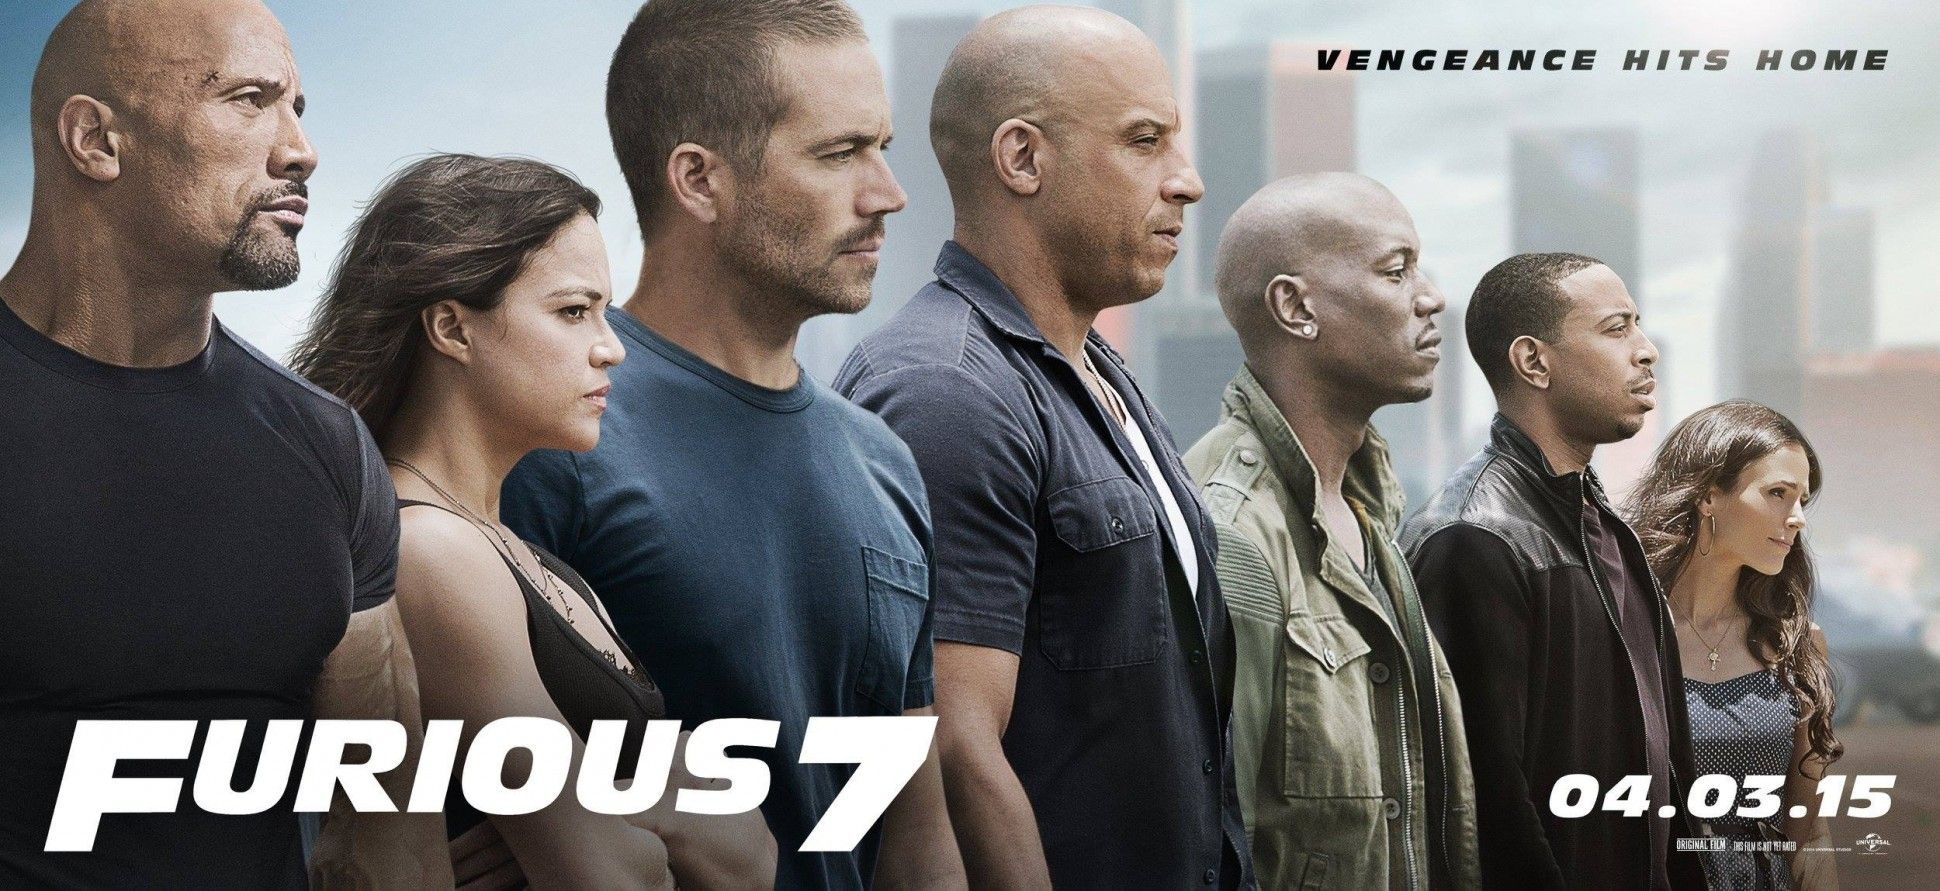 'Furious 7' Still King of the Box Office in its Second Week